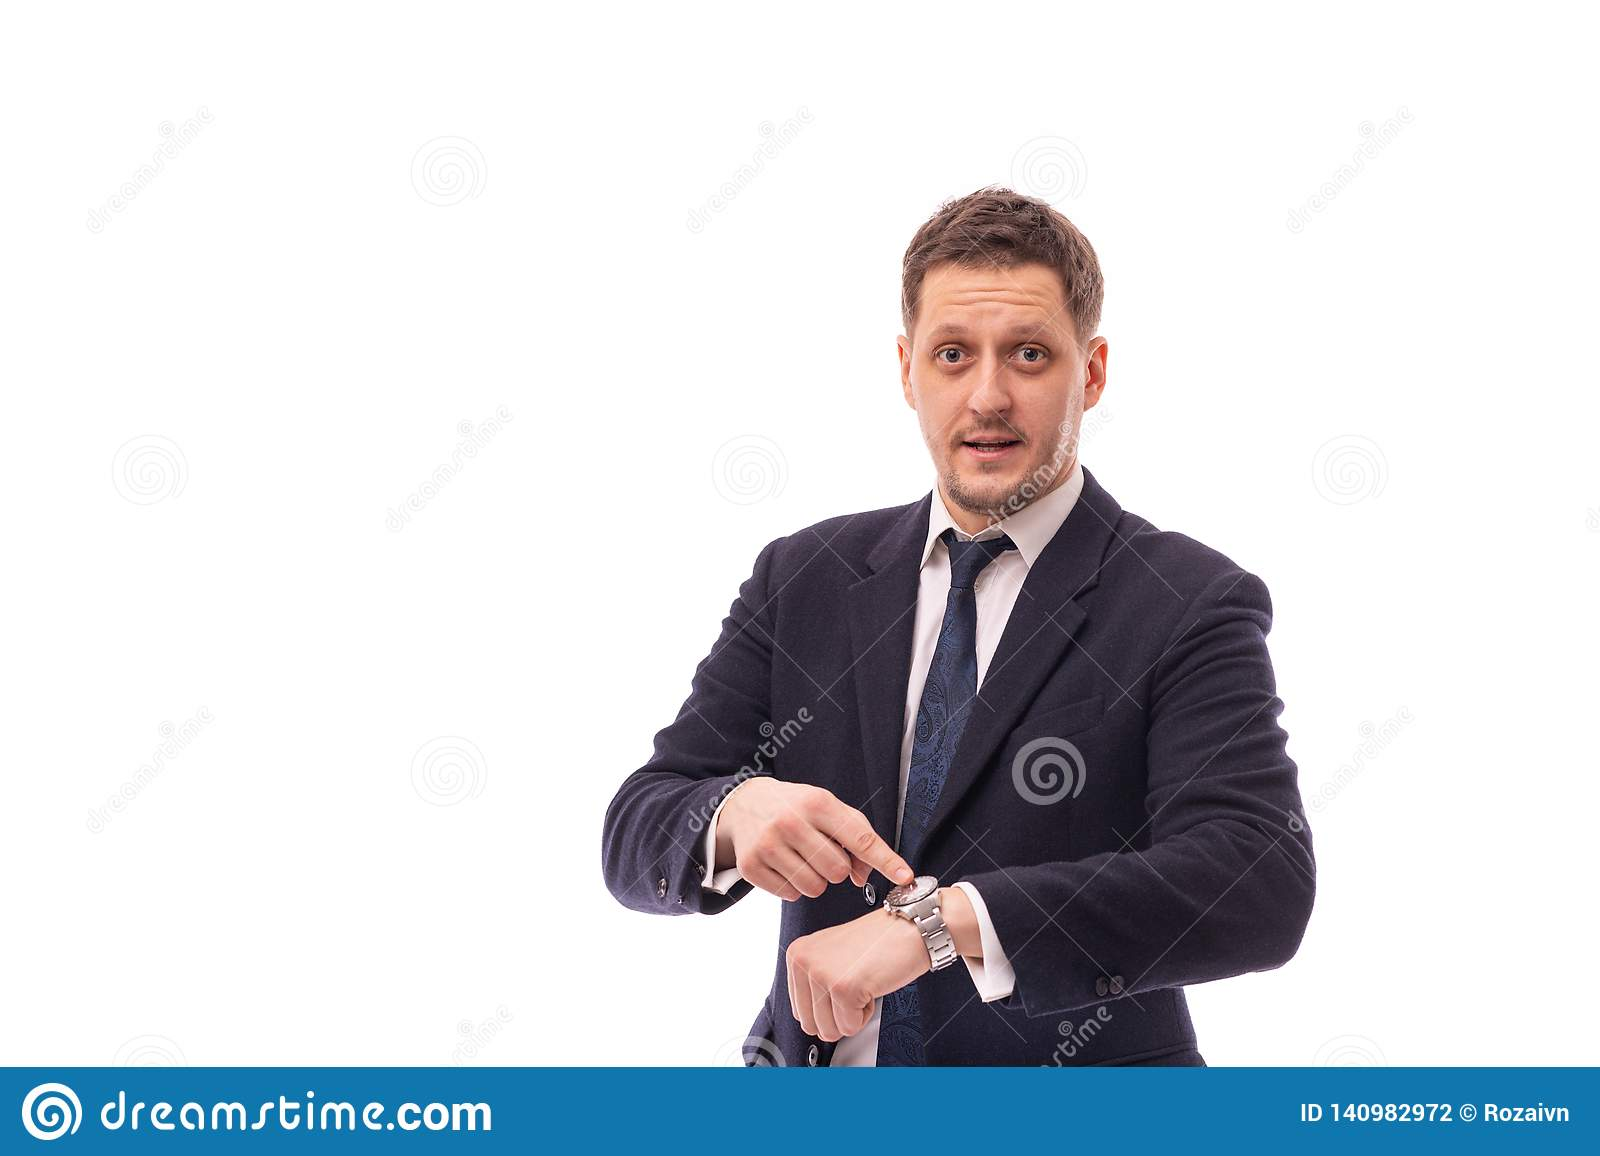 Studio shot of a young businessman wearing dark blue suit points to time on a wristwatch recalling the necessary discipline or